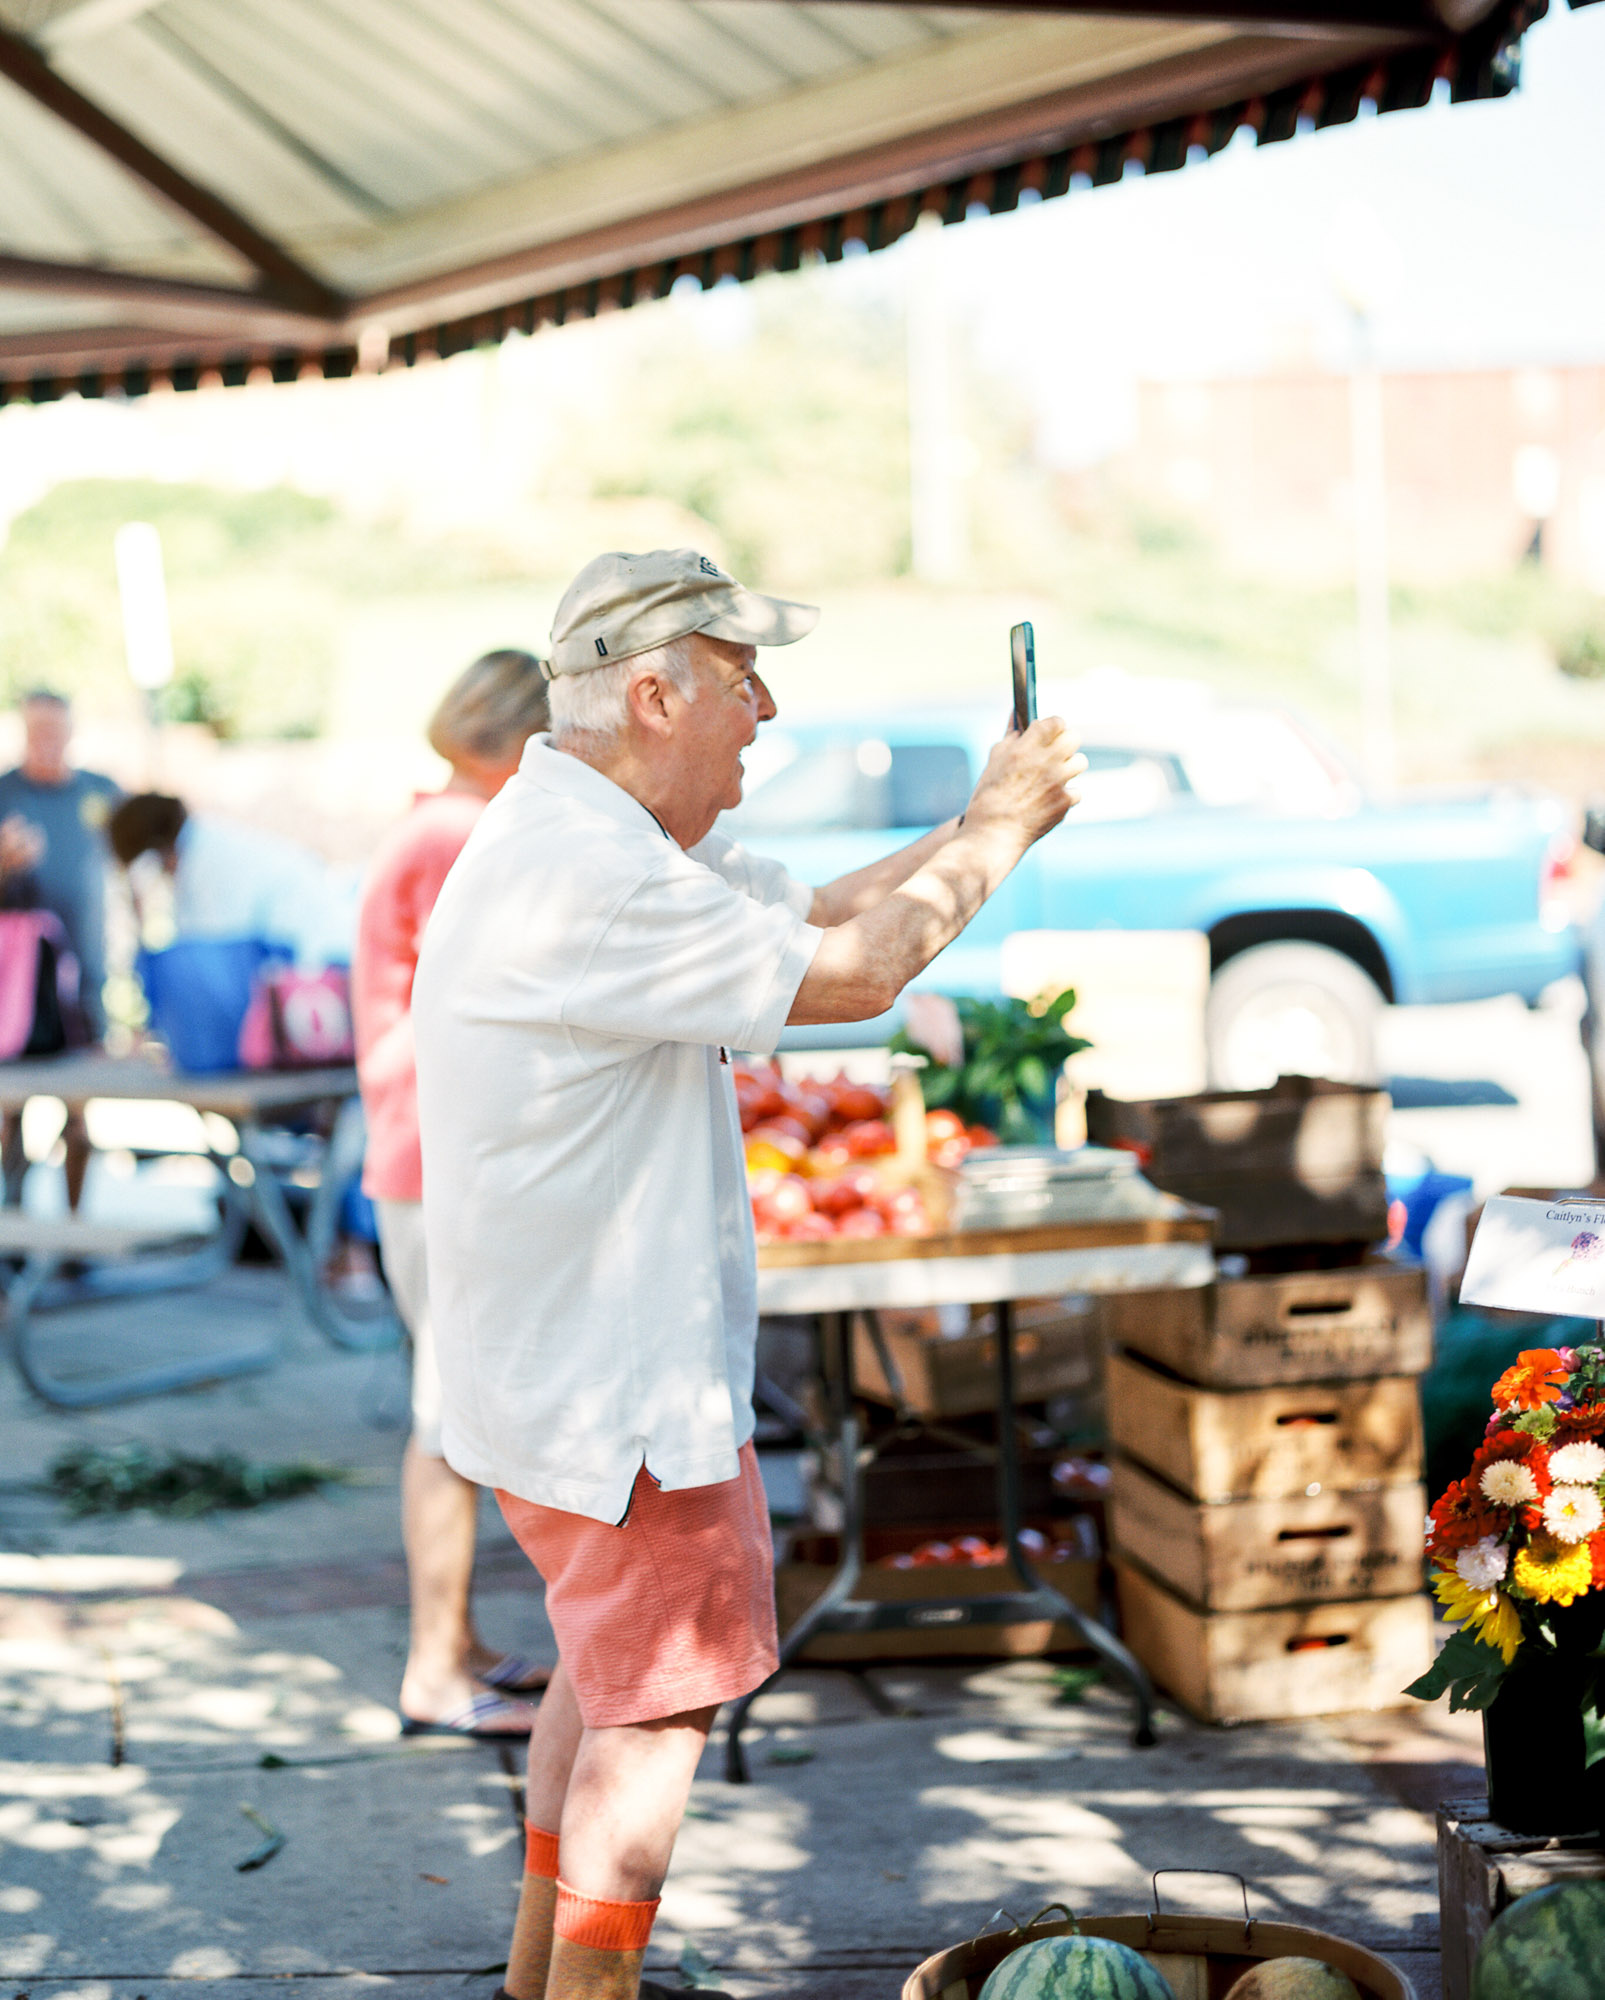 Lynchburg_Community_Market_Photographer_Downtown_Photographer-11.jpg